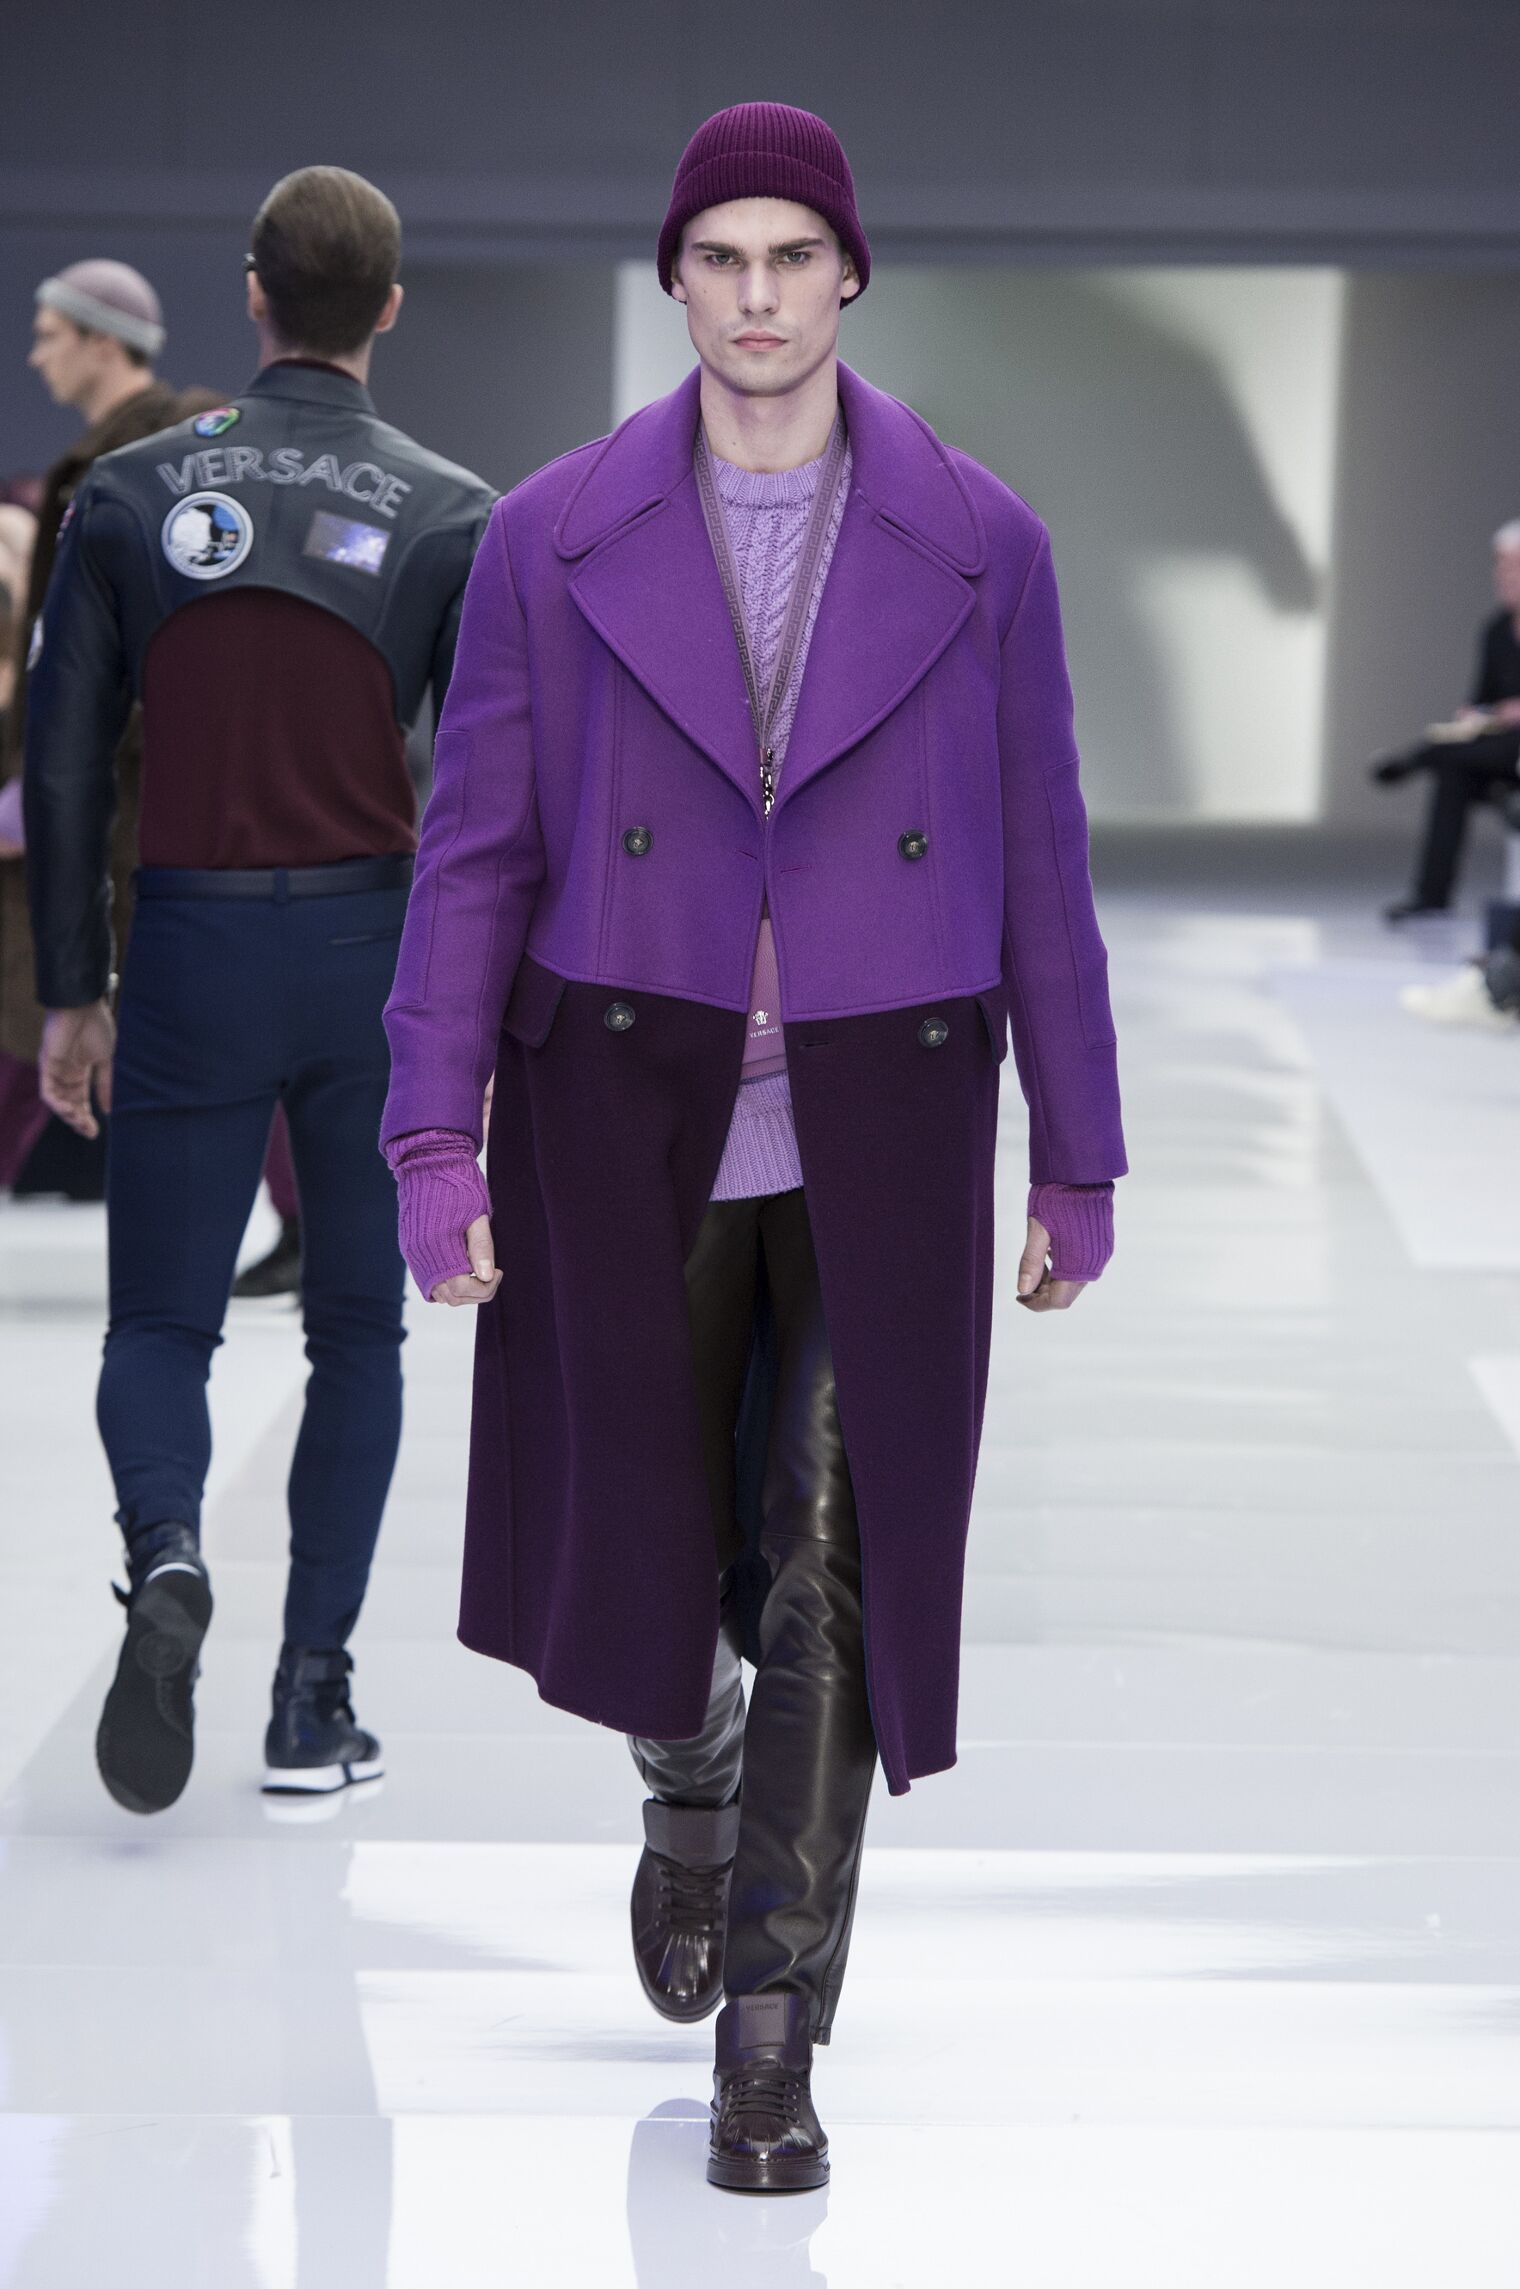 VERSACE FALL WINTER 2016-17 MEN'S COLLECTION